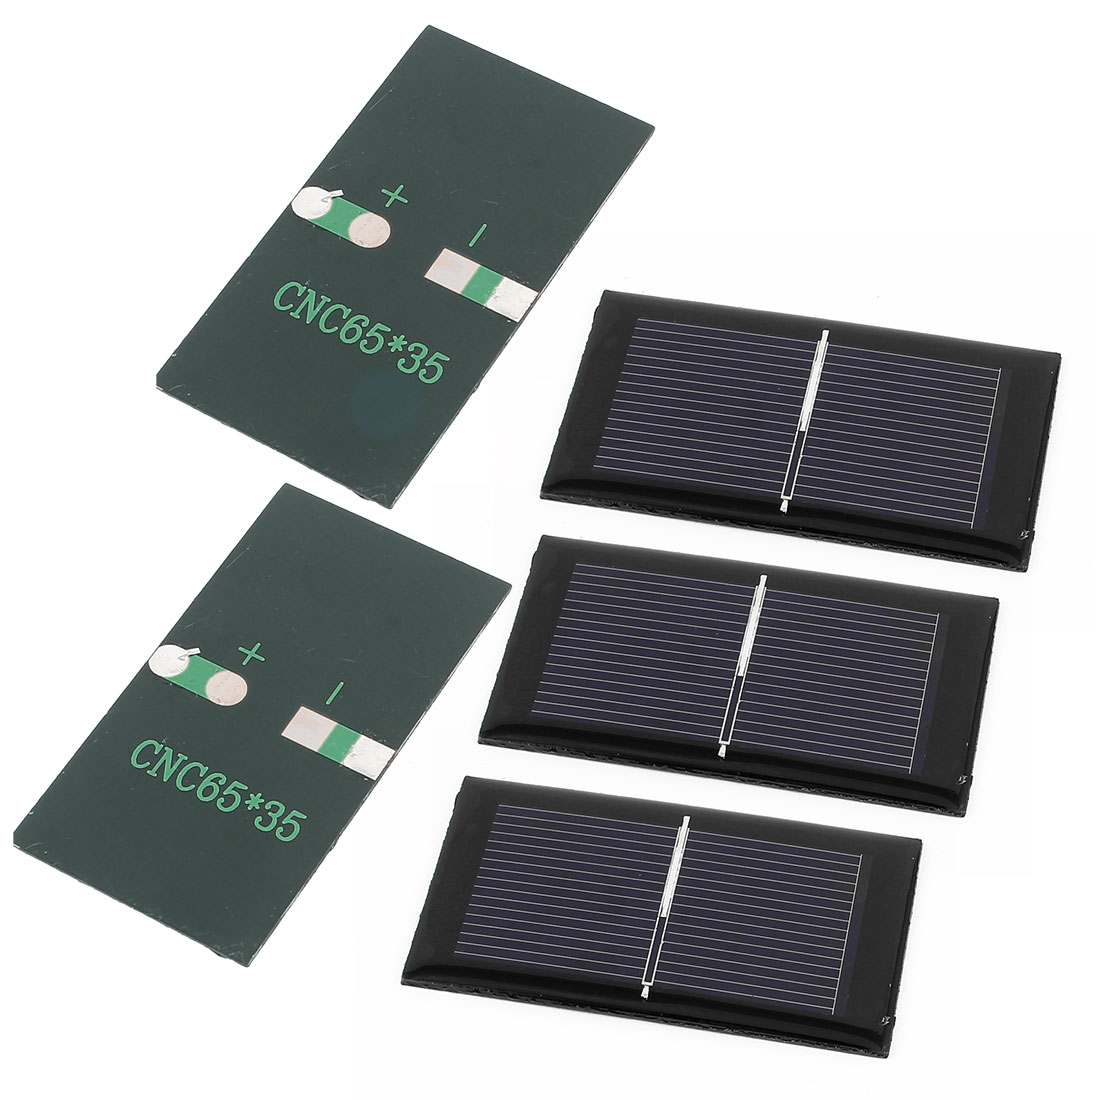 5 Pcs 0.5V 0.15W DIY Polycrystallinesilicon Solar Panel Power Cell Battery Charger 65mm x 35mm